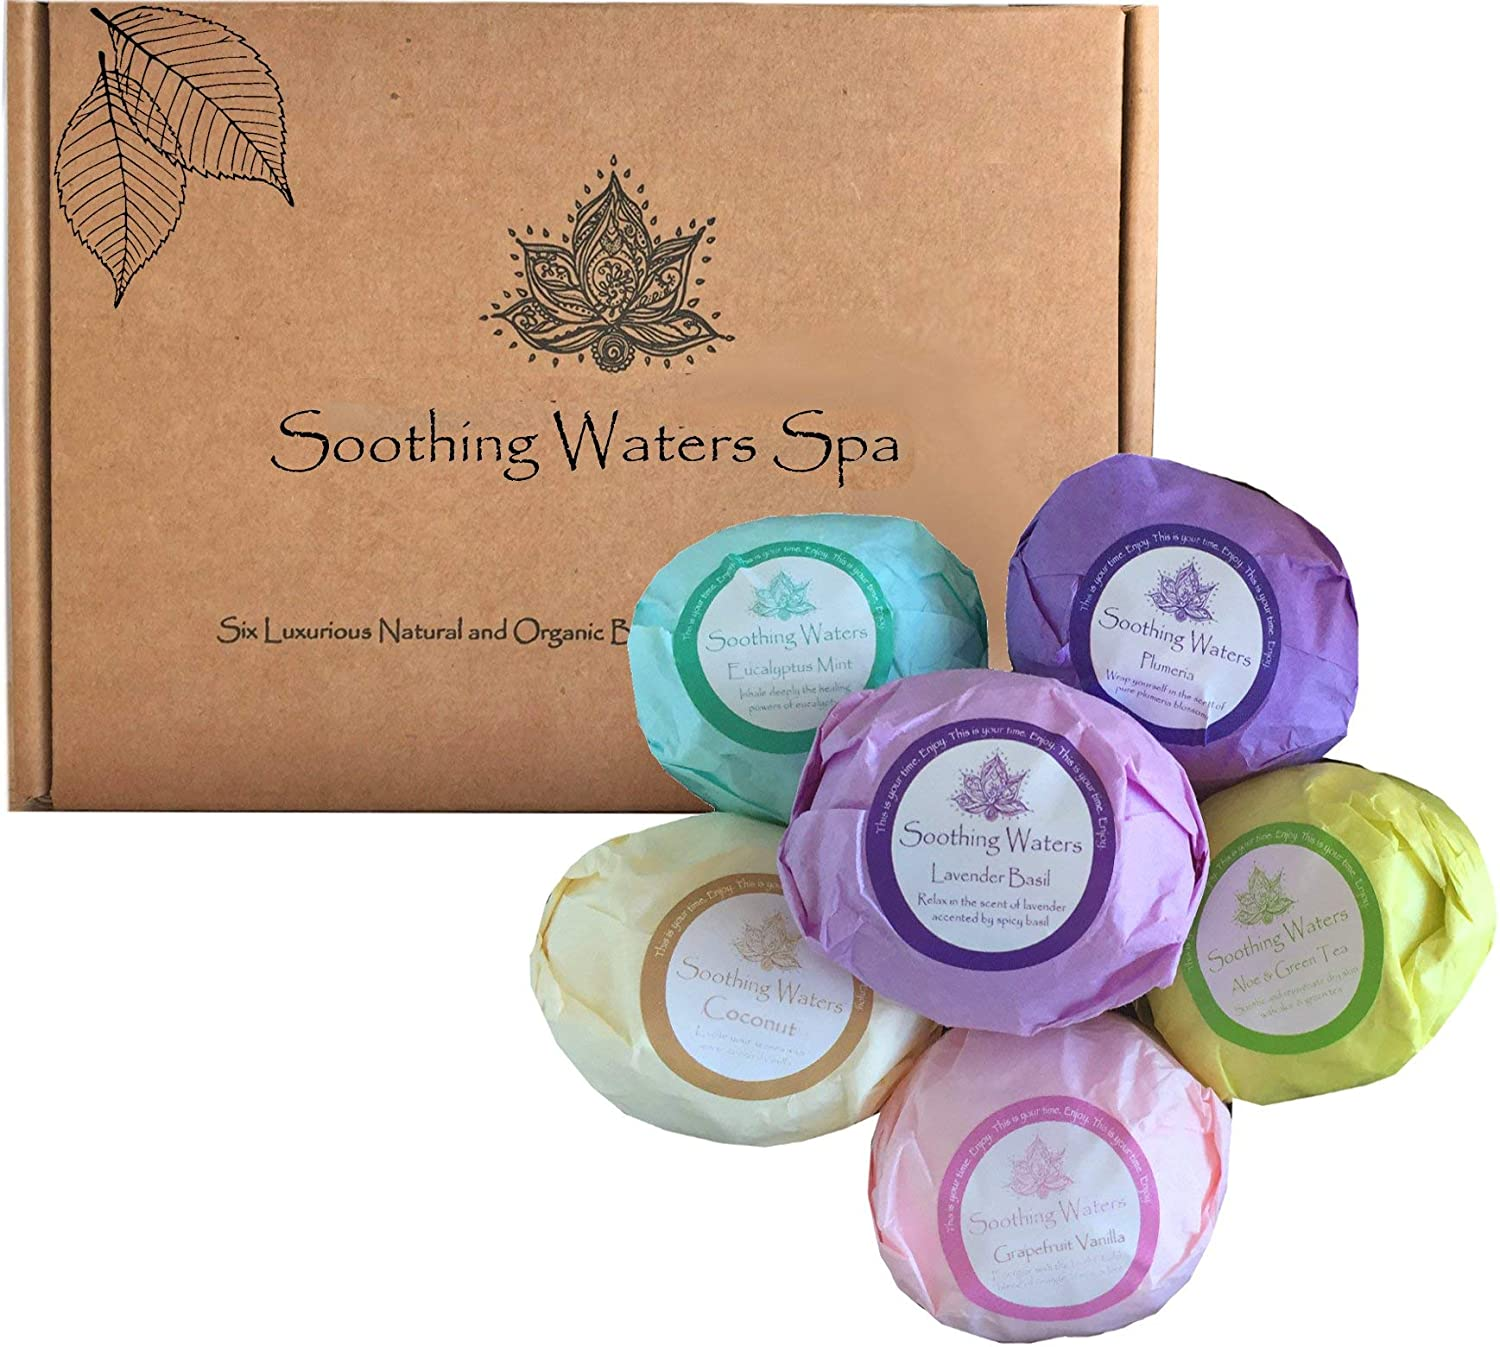 Soothing Waters Spa Natural, Vegan, Organic Bath Bombs Gift Set. Moisturizes Dry Skin w/Ultra Lush Shea & Coco Butter & Essential Oils. Perfect Mothers Day gift ideas for women, girlfriend, wife, kids